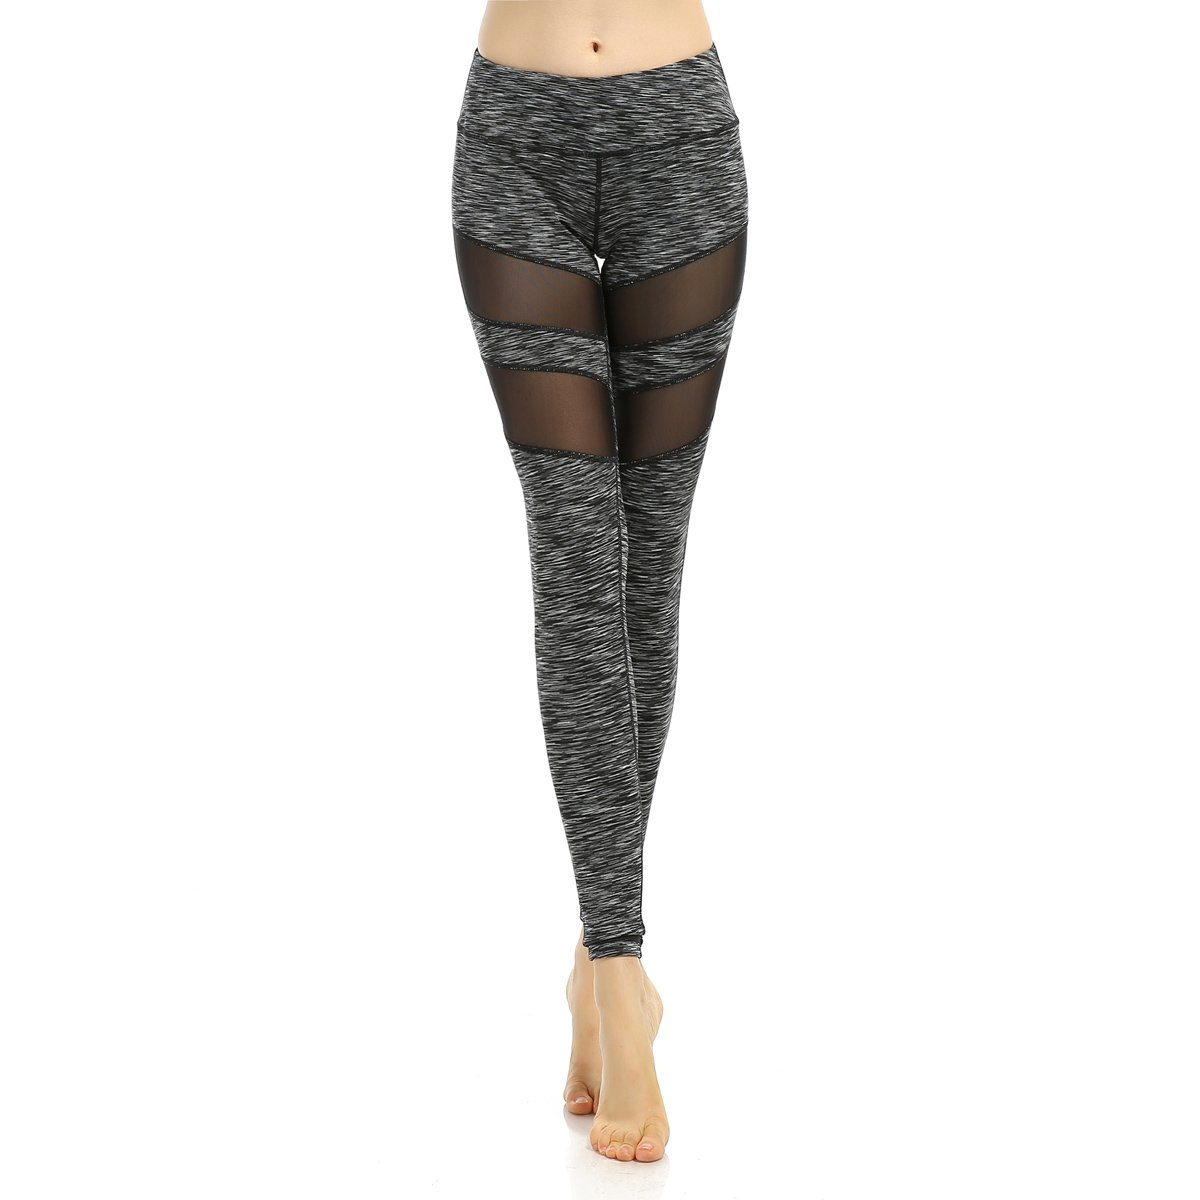 SOUTEAM Women's Workout Mesh Elastic Leggings High Waist Yoga Active Gym Pants